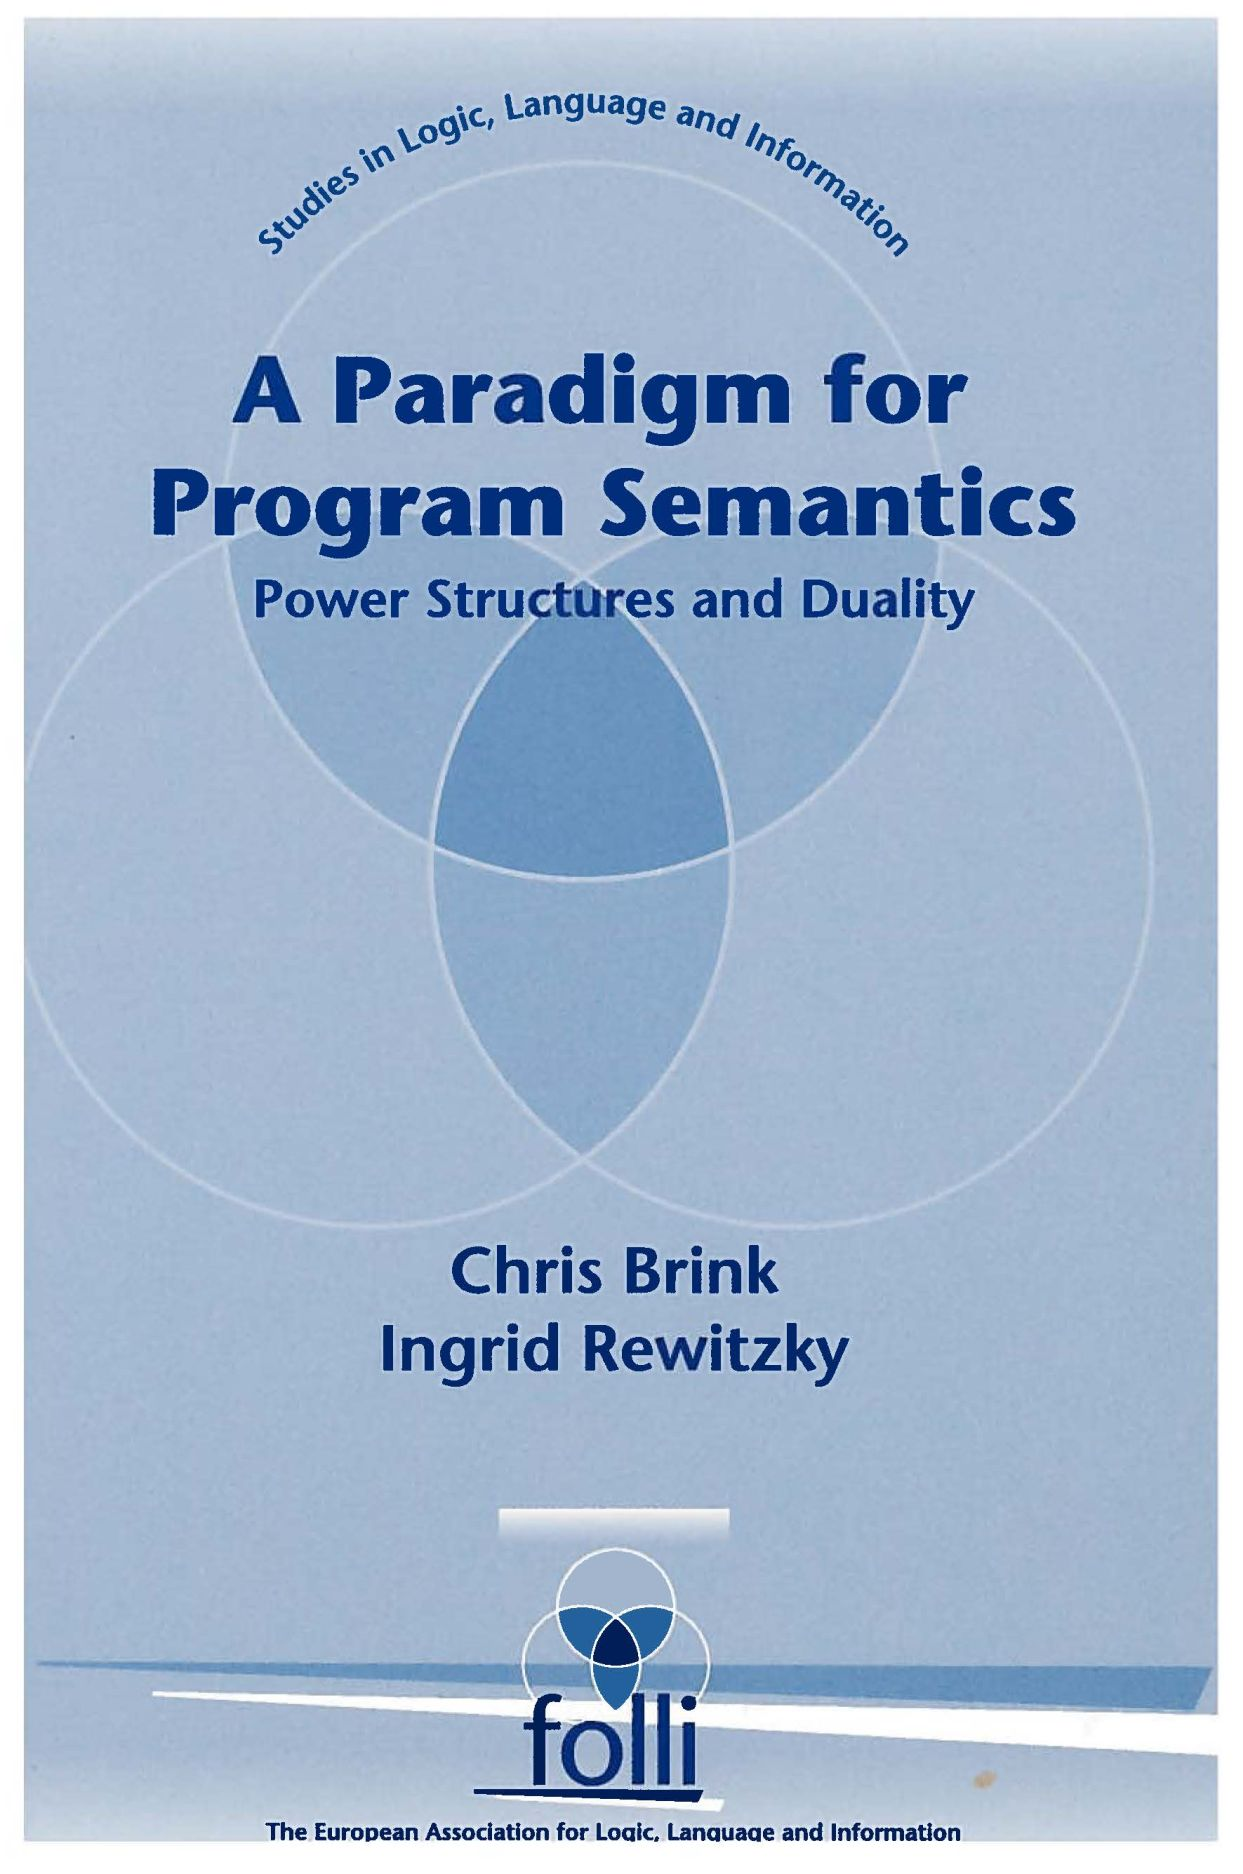 A Paradigm for Program Semantics: Power Structures and Duality